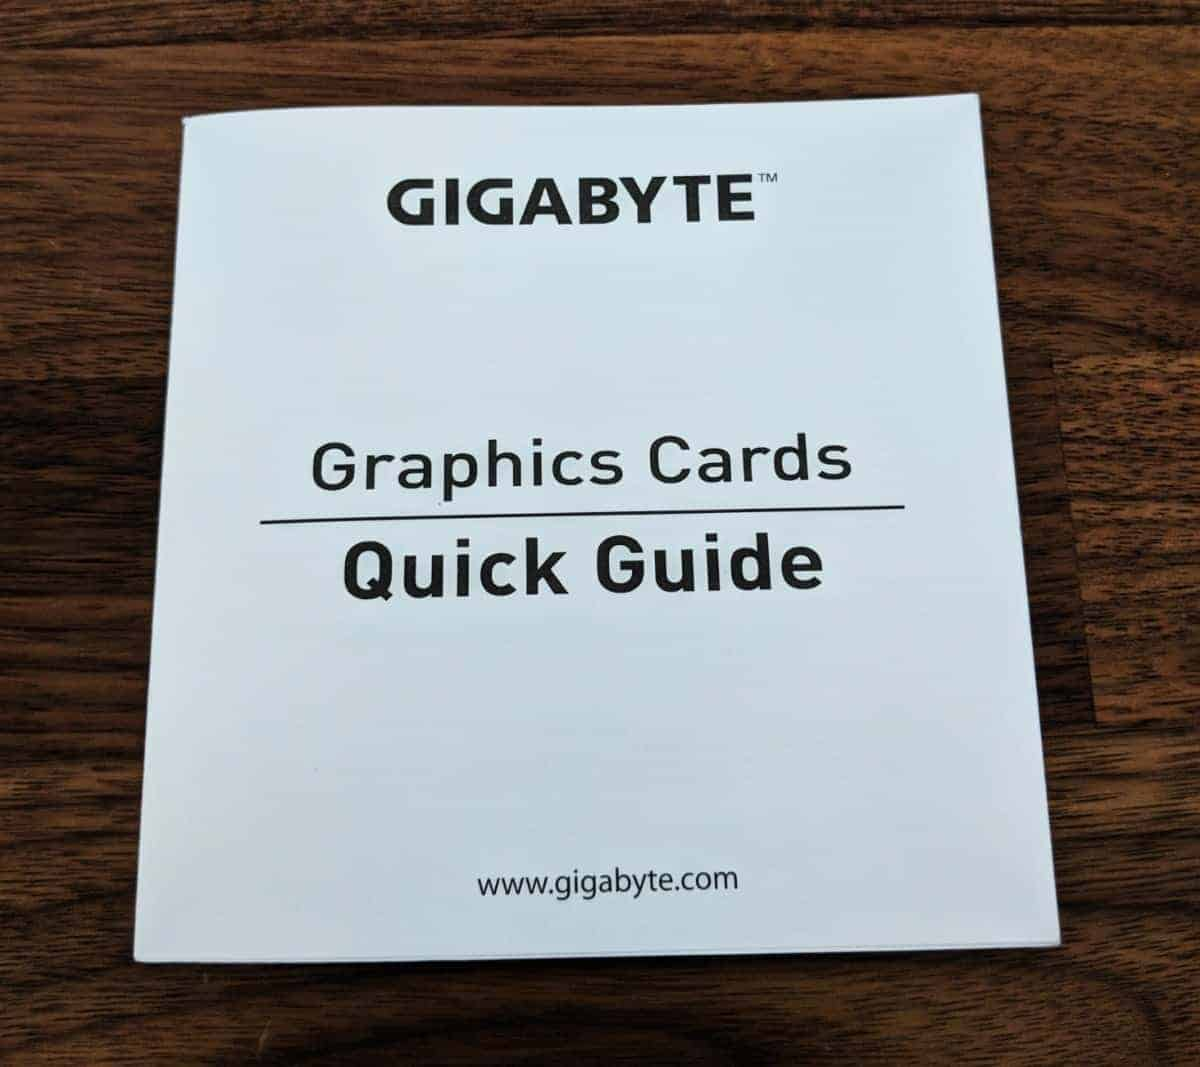 Gigabyte-GTX1080-G1-Photos-12 Gigabyte GTX1080 G1 Gaming Review